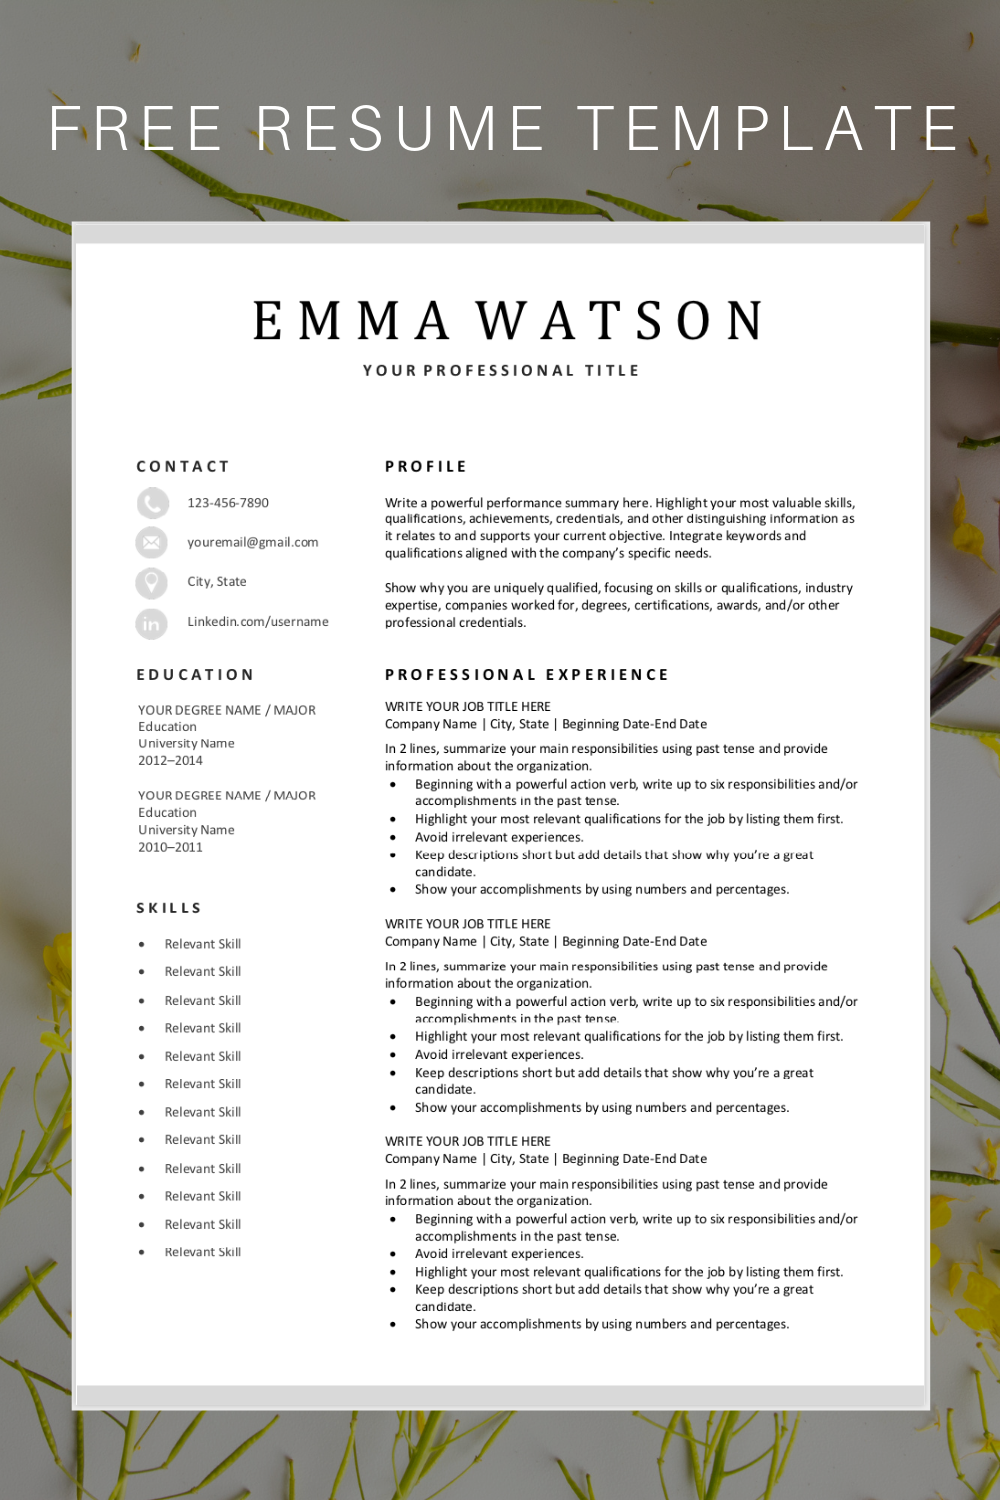 Looking For A Free Editable Resume Template Sign Up For Our Job Search Tips And Dow Resume Template Free Nursing Resume Template Downloadable Resume Template